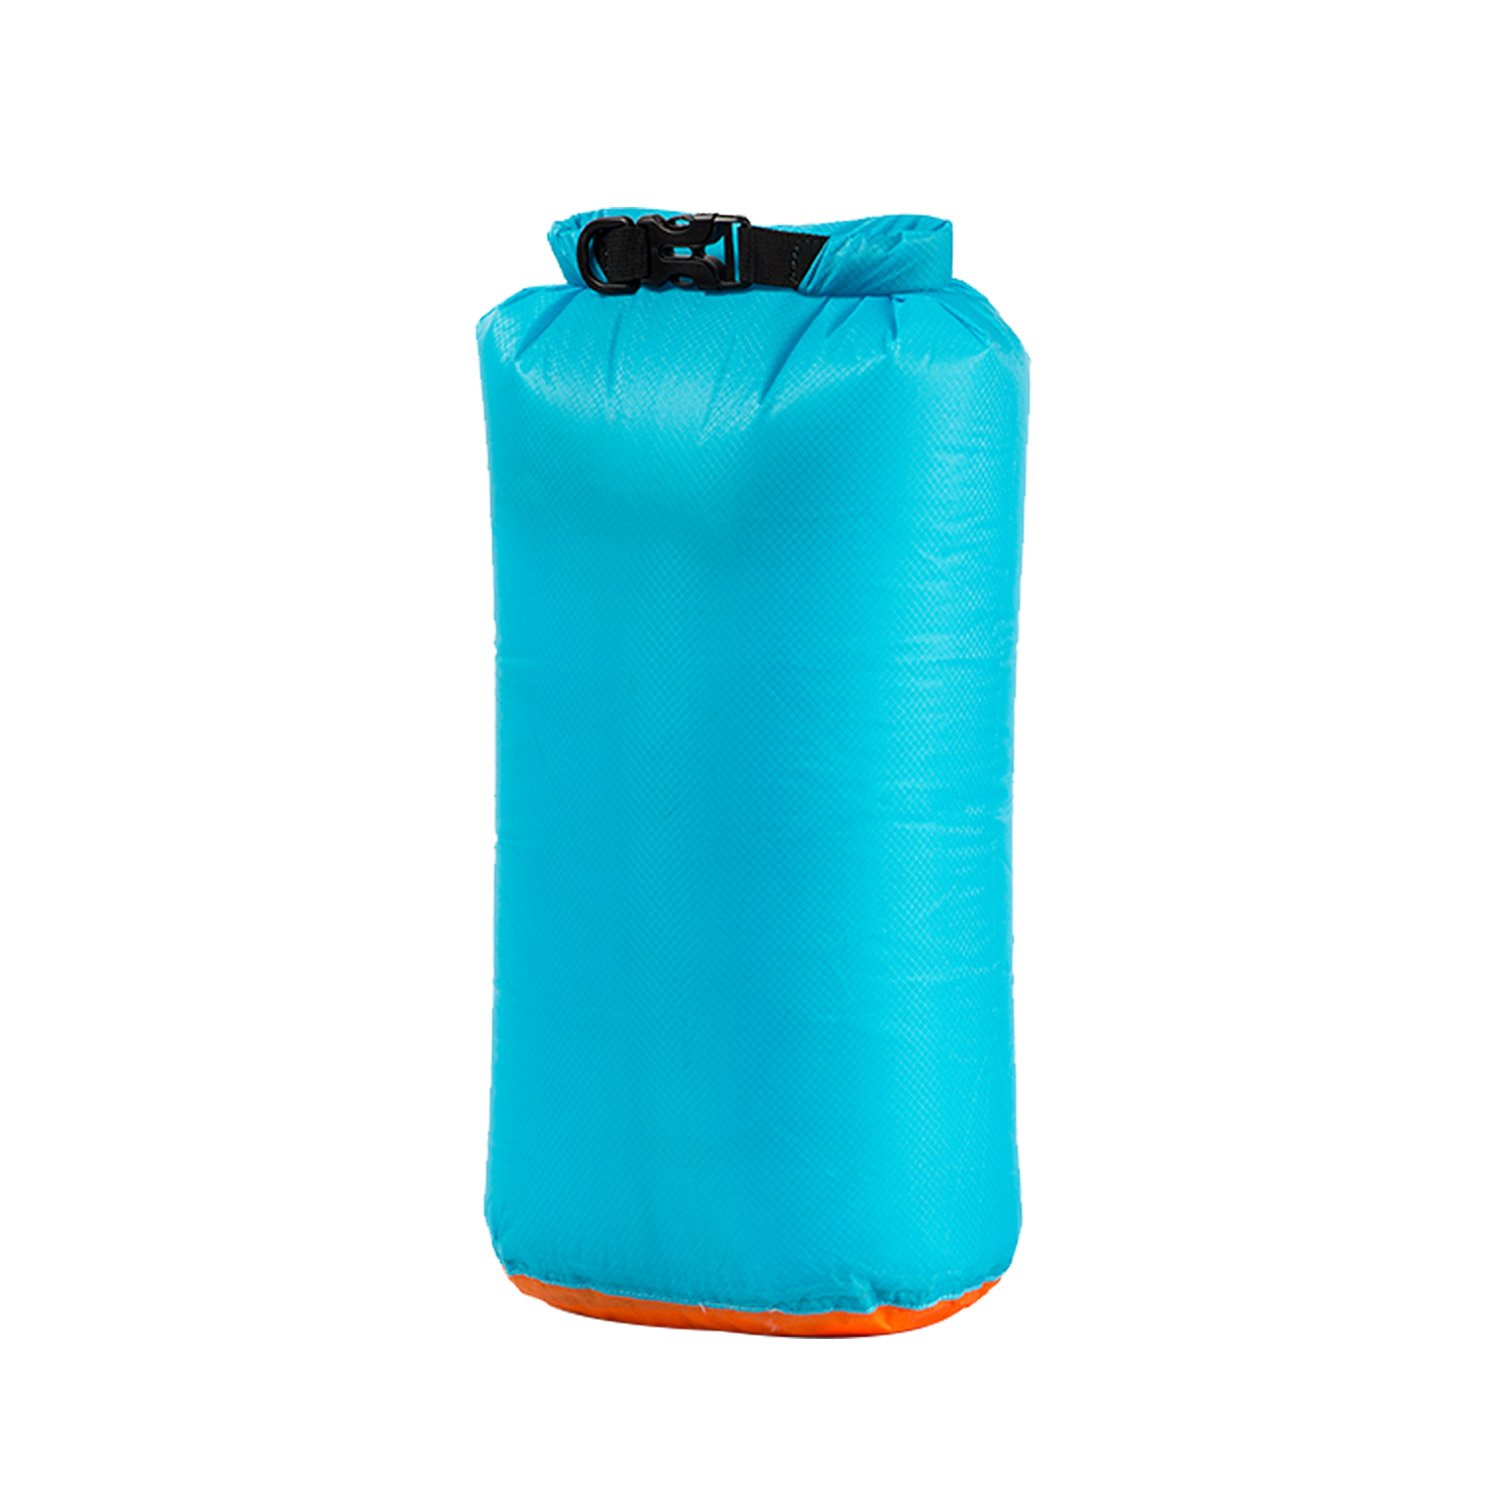 1T Waterproof Dry Bag, Ultralight Dry Sack, Roll Top Compression Sack 1T Gear